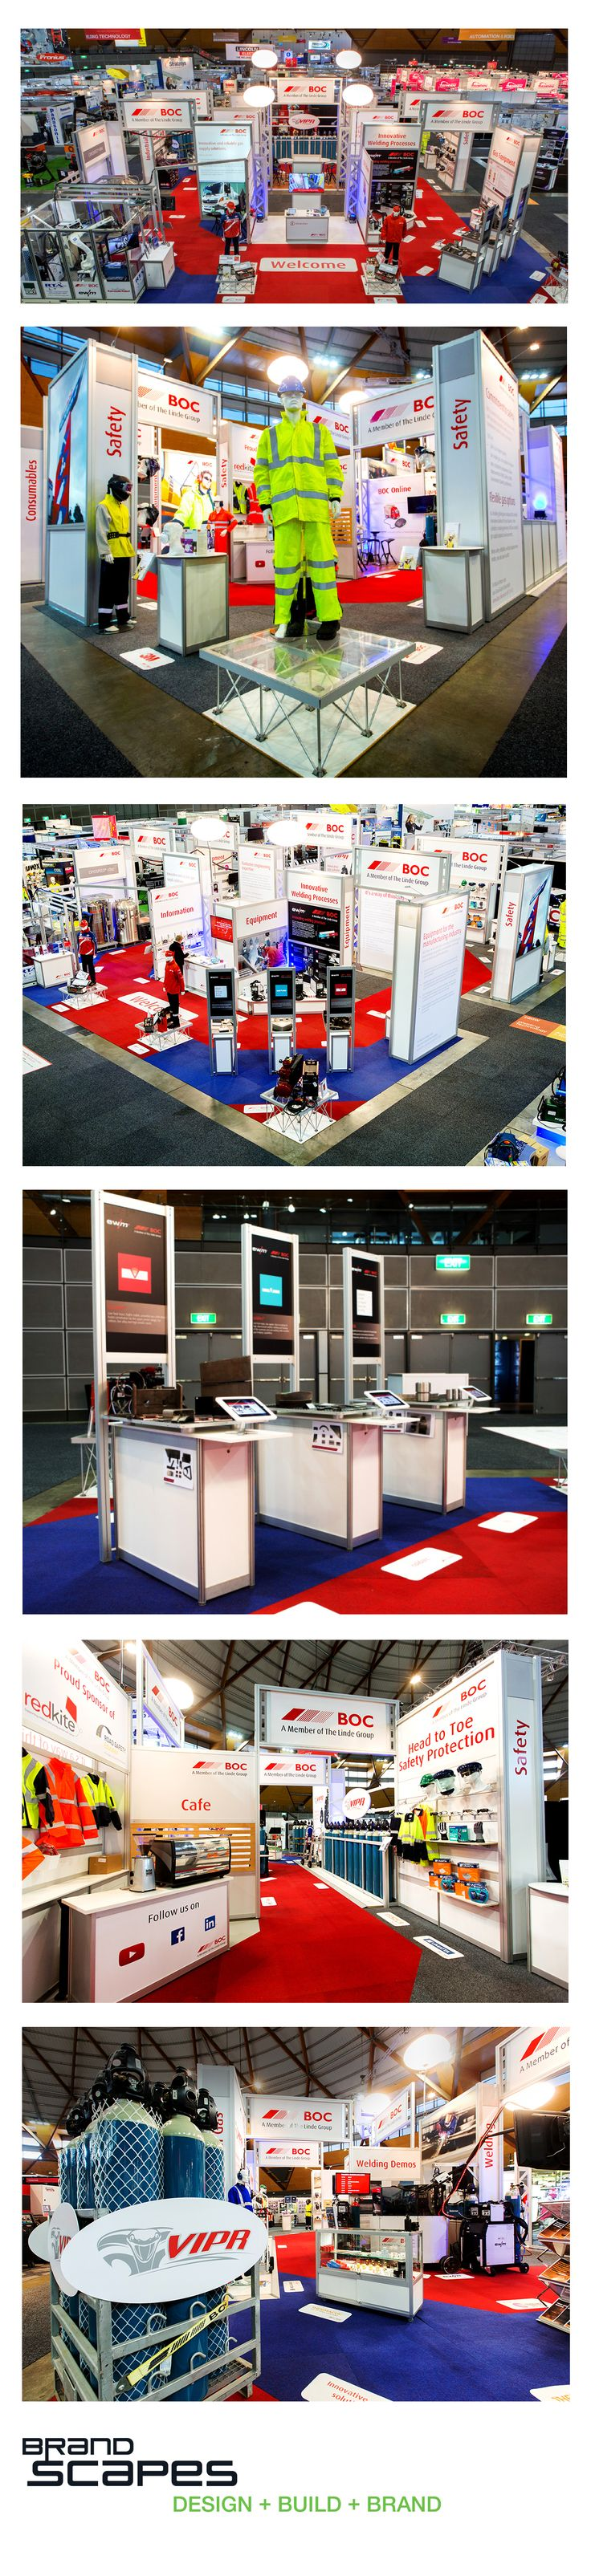 BOC National Manufacturing Week: A massive 225 square meter stand that featured live welding demonstrations, robots in operation and its own café.